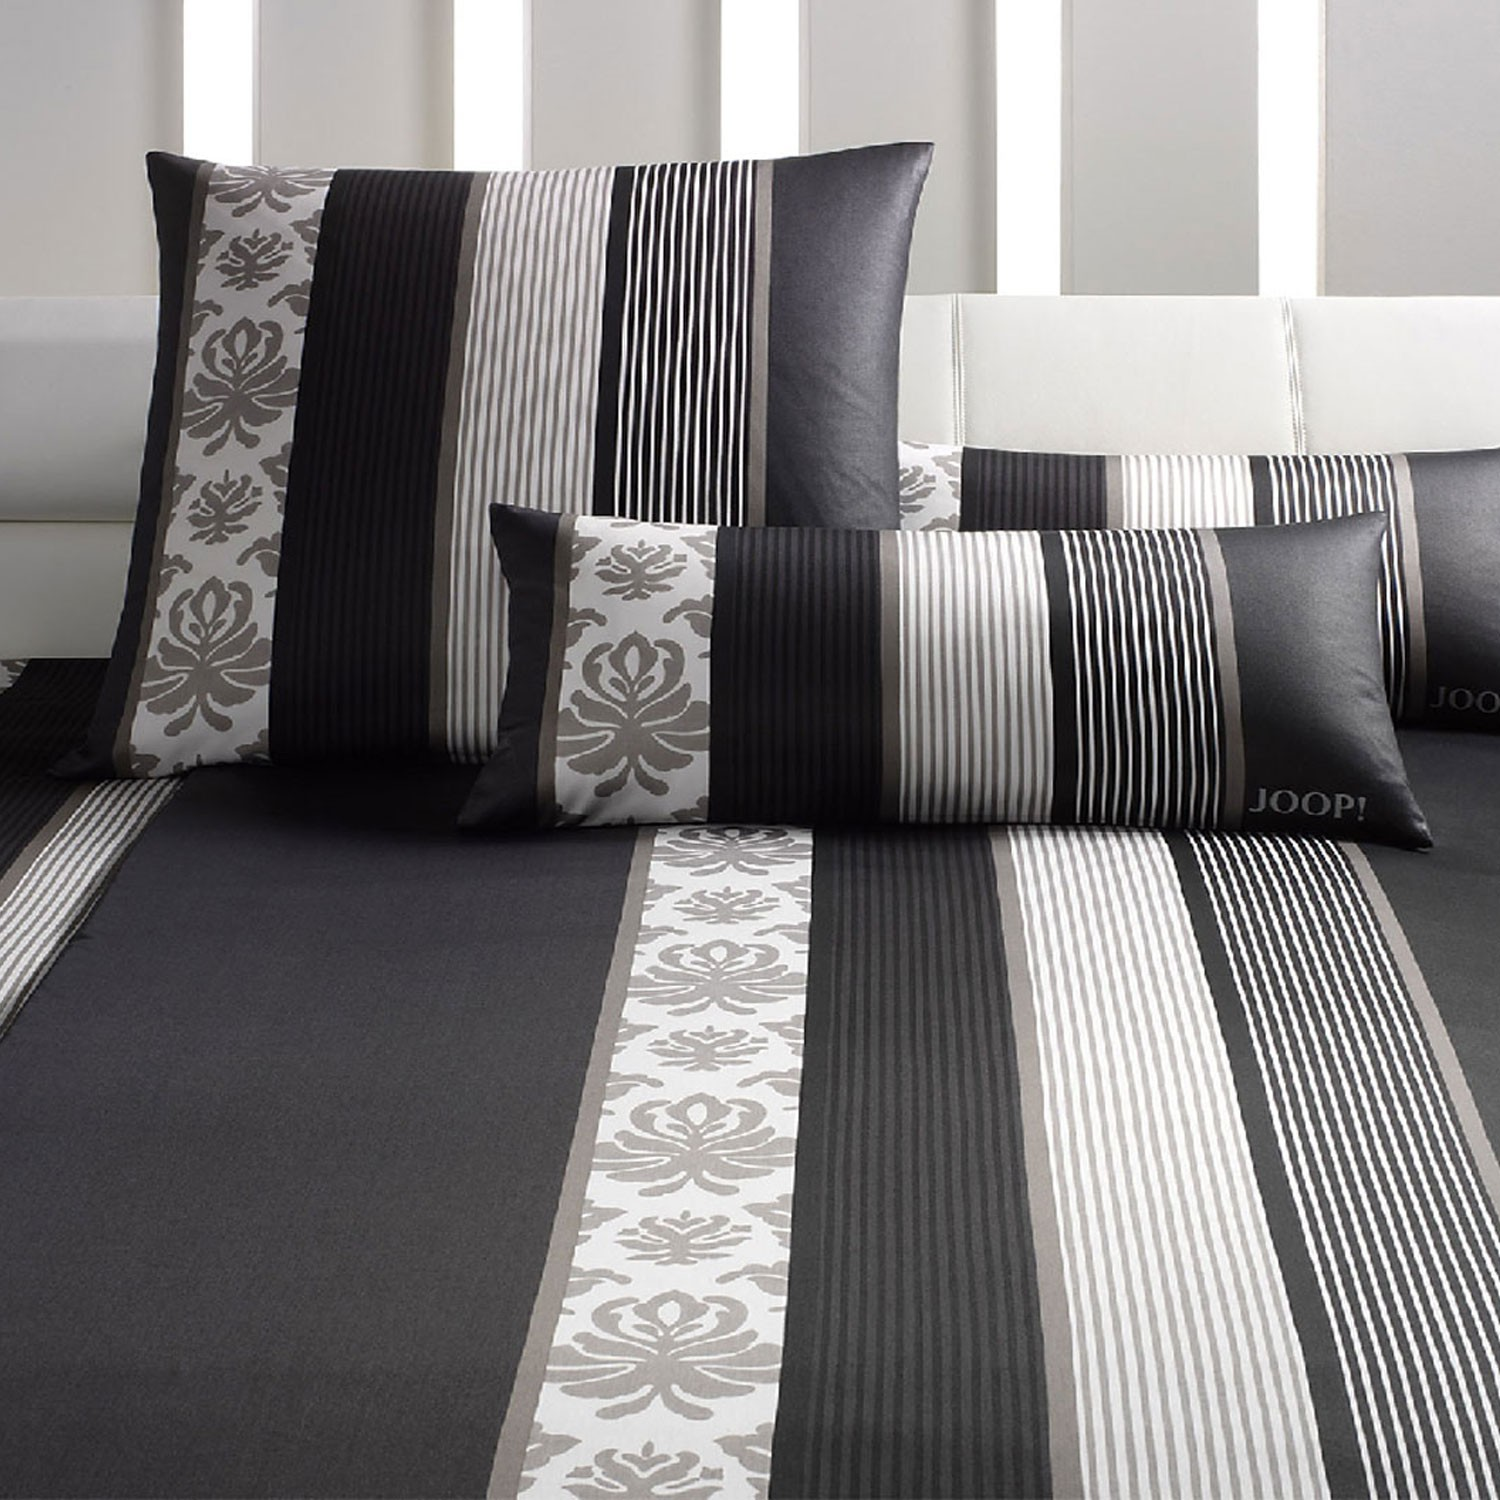 joop bettw sche ornament stripes 4022 09 schwarz. Black Bedroom Furniture Sets. Home Design Ideas